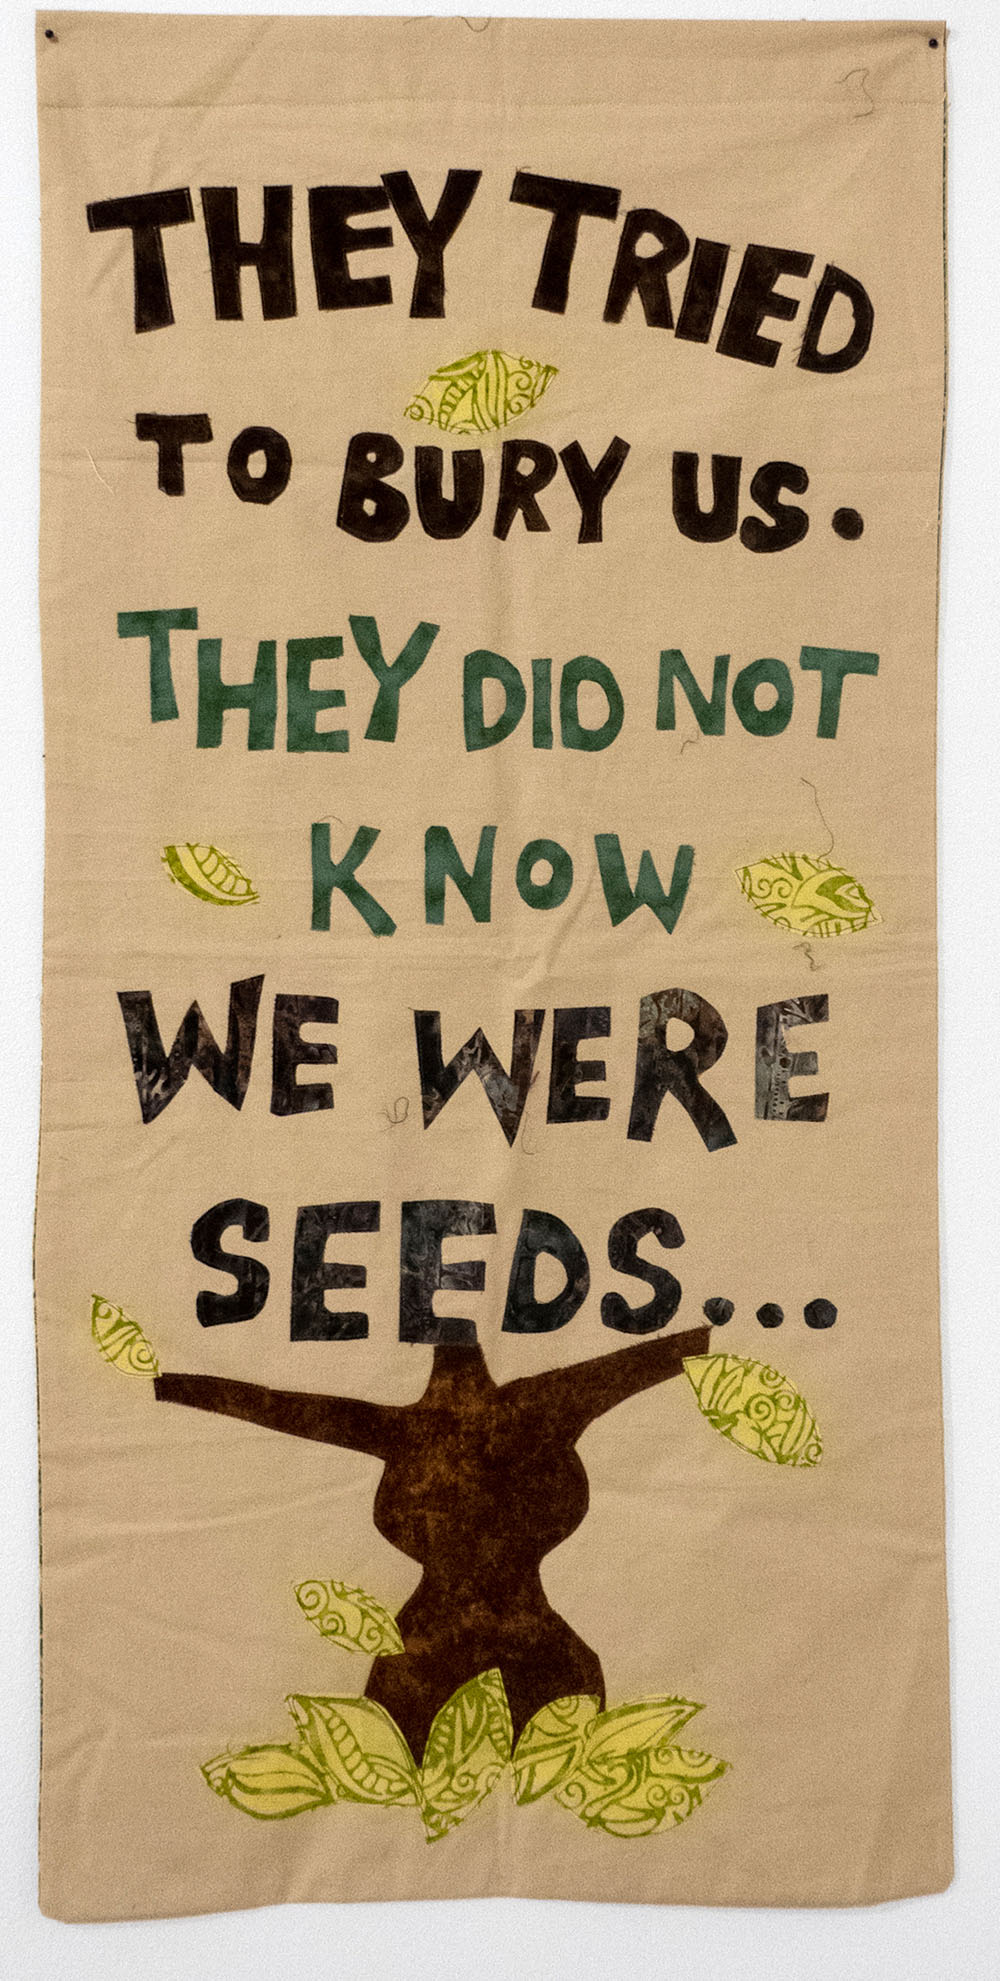 They Tried to Bury Us.  They Did Not Know We Were Seeds?